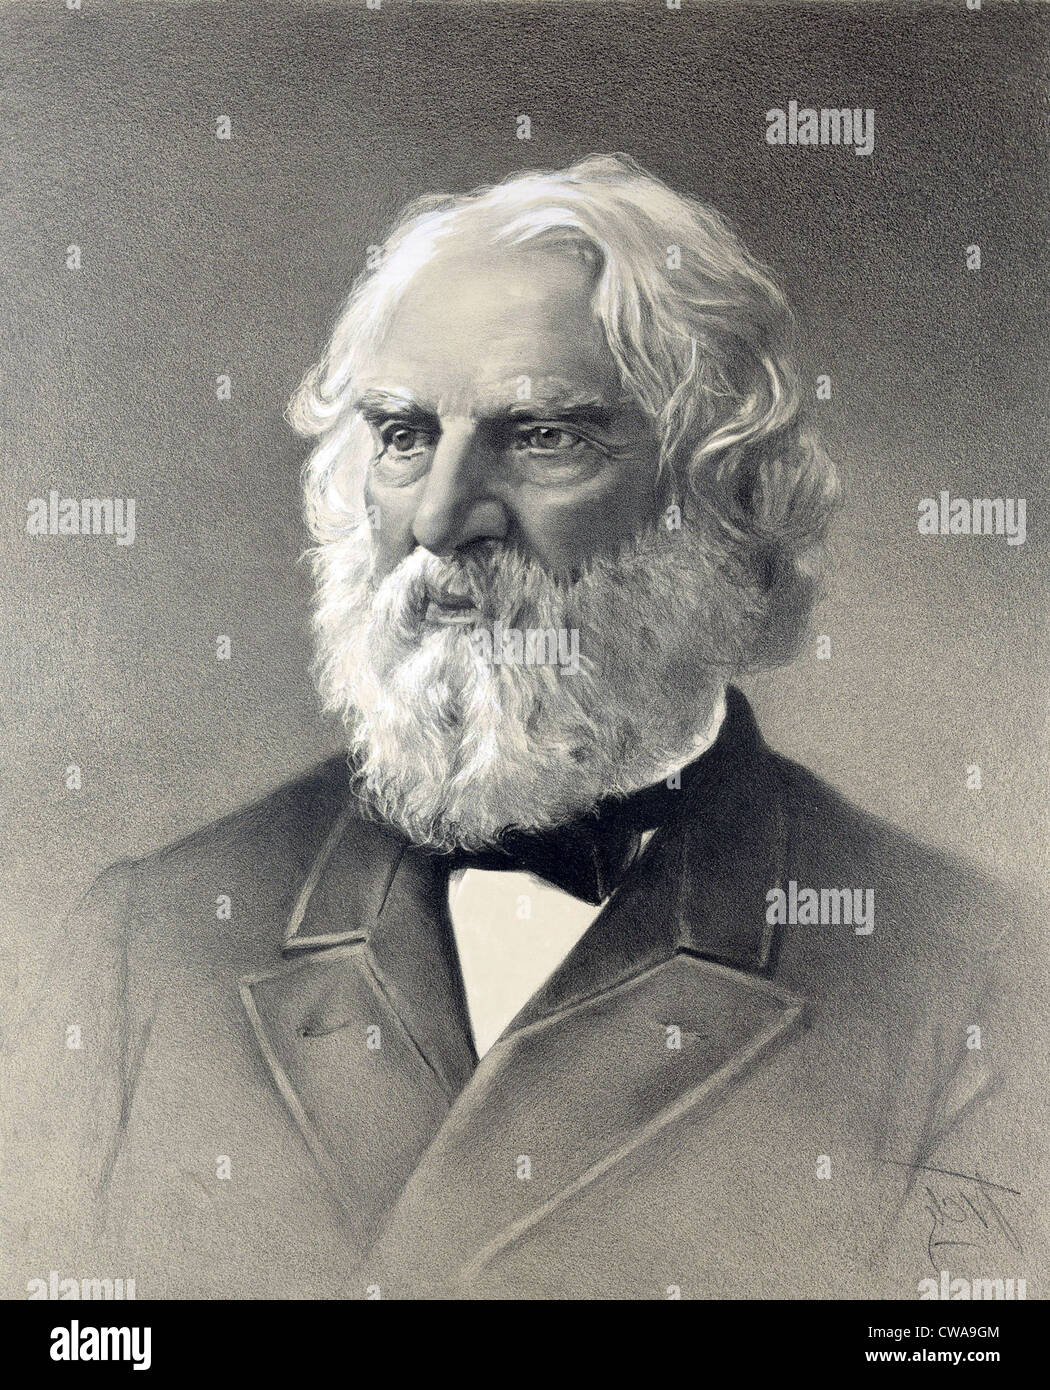 henry wadsworth longfellow created epic poems stock  henry wadsworth longfellow 1807 1882 created epic poems evangeline 1847 and the song of hiawatha 1855 that became